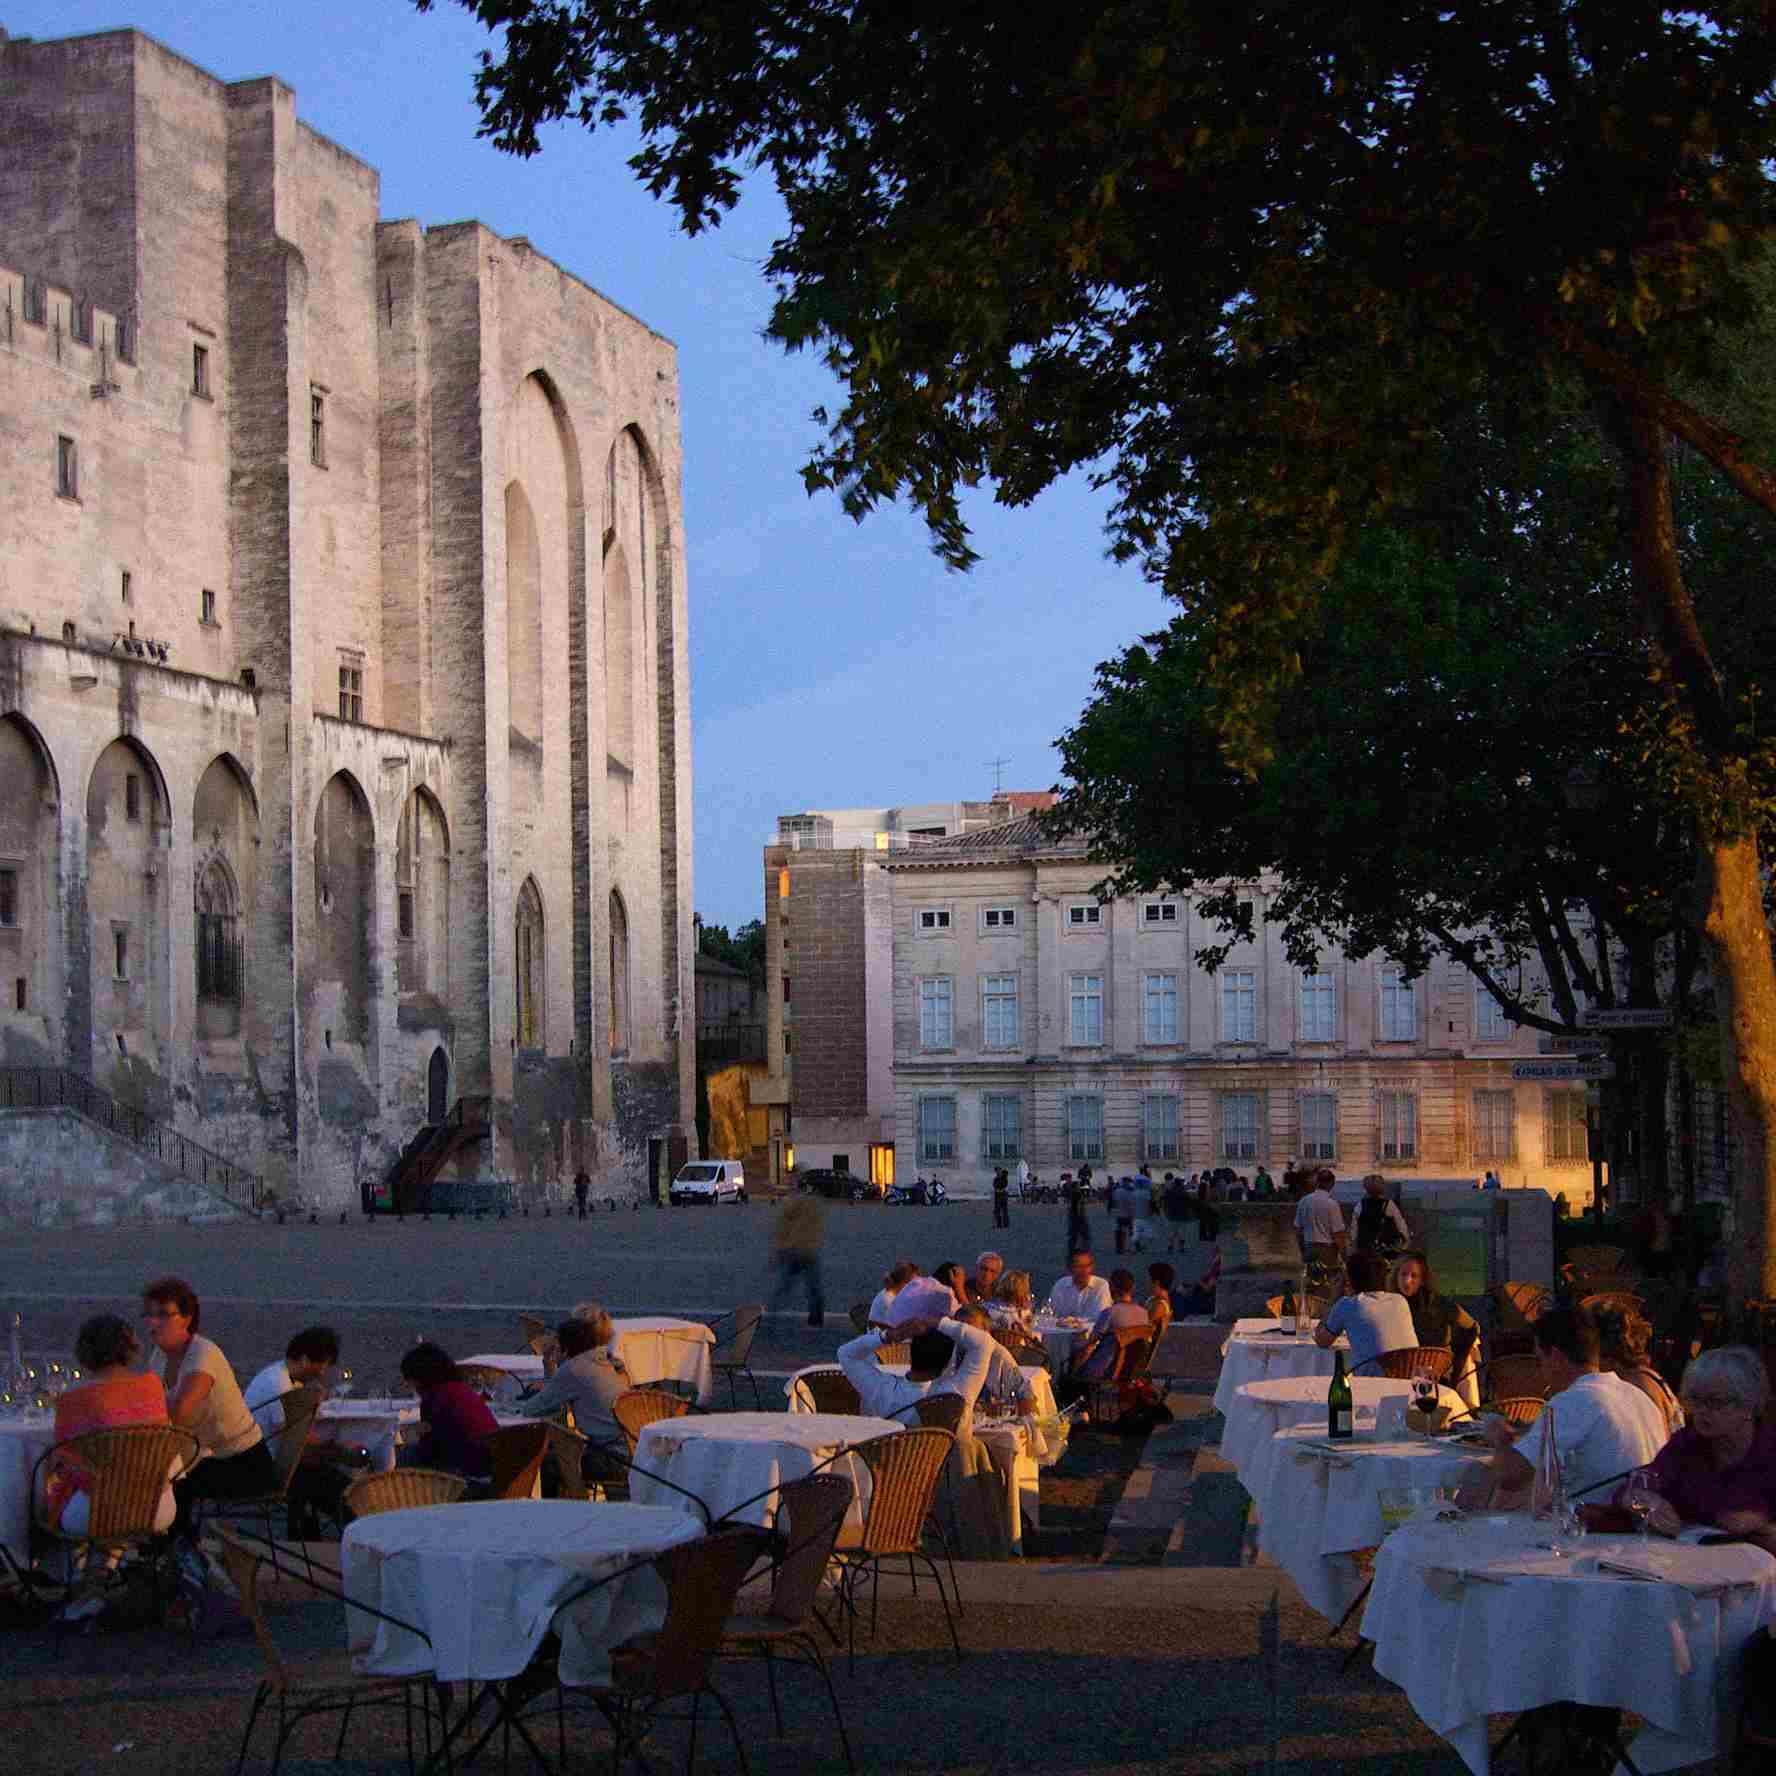 Visitors enjoy evening refreshments at the Place Palais in Avignon